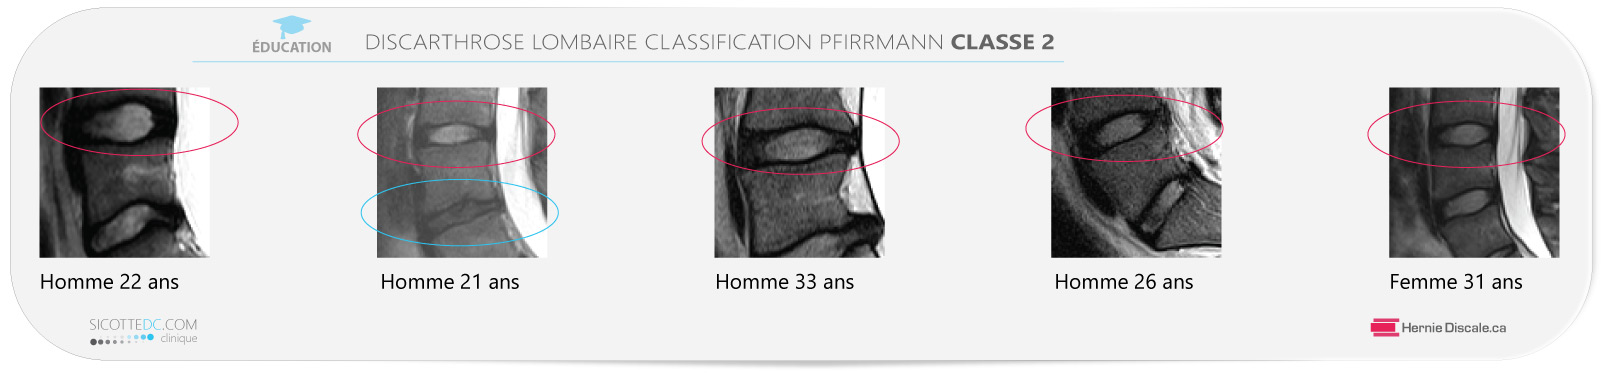 Example discarthrose lombaire classification Pfirrmann classe 2